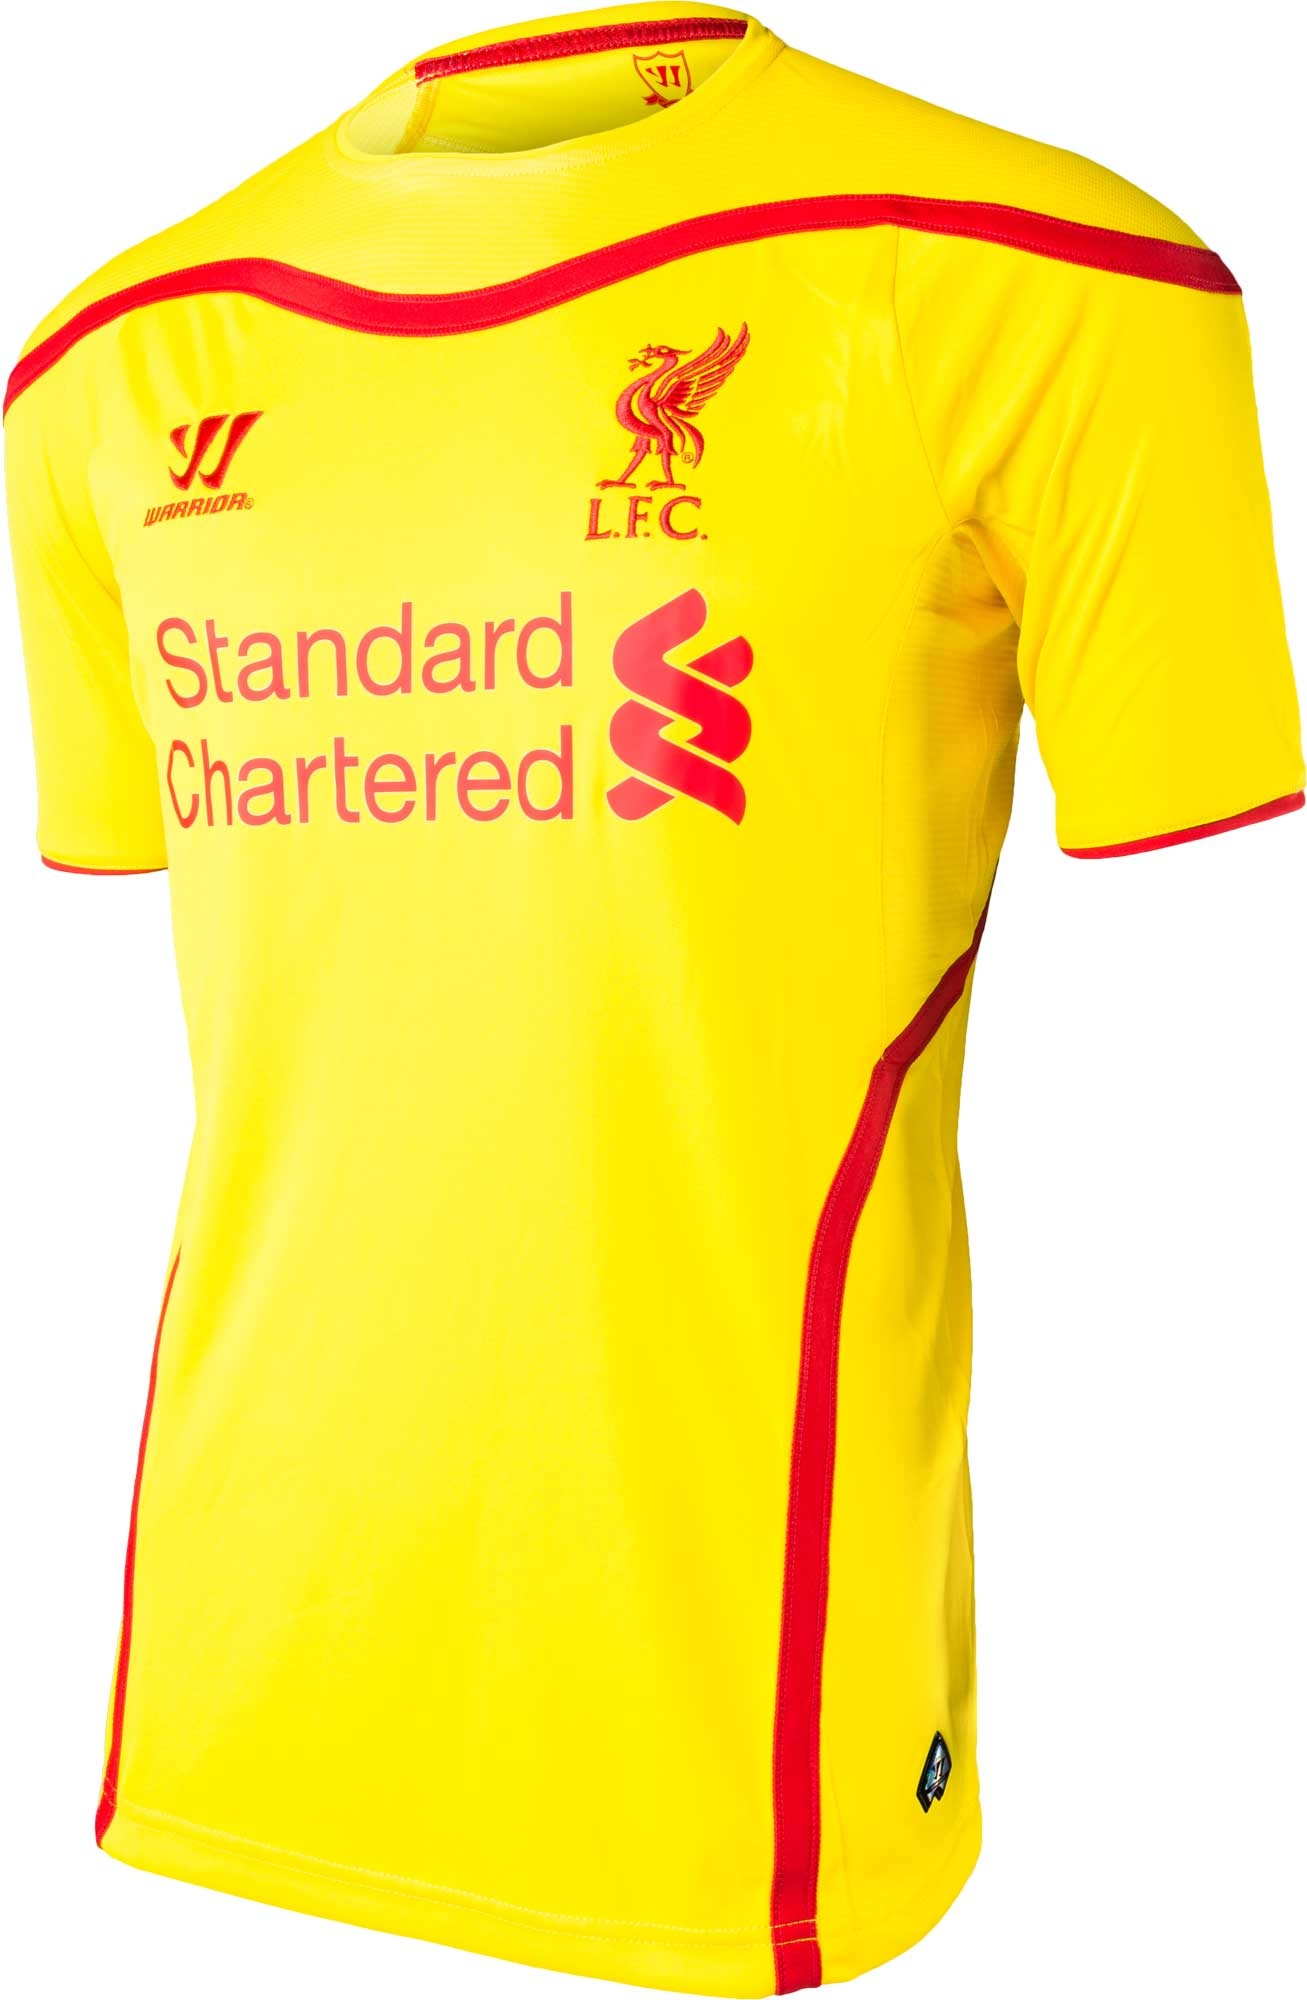 2014/2015 Warrior Liverpool Away Jersey - LFC Soccer Jerseys